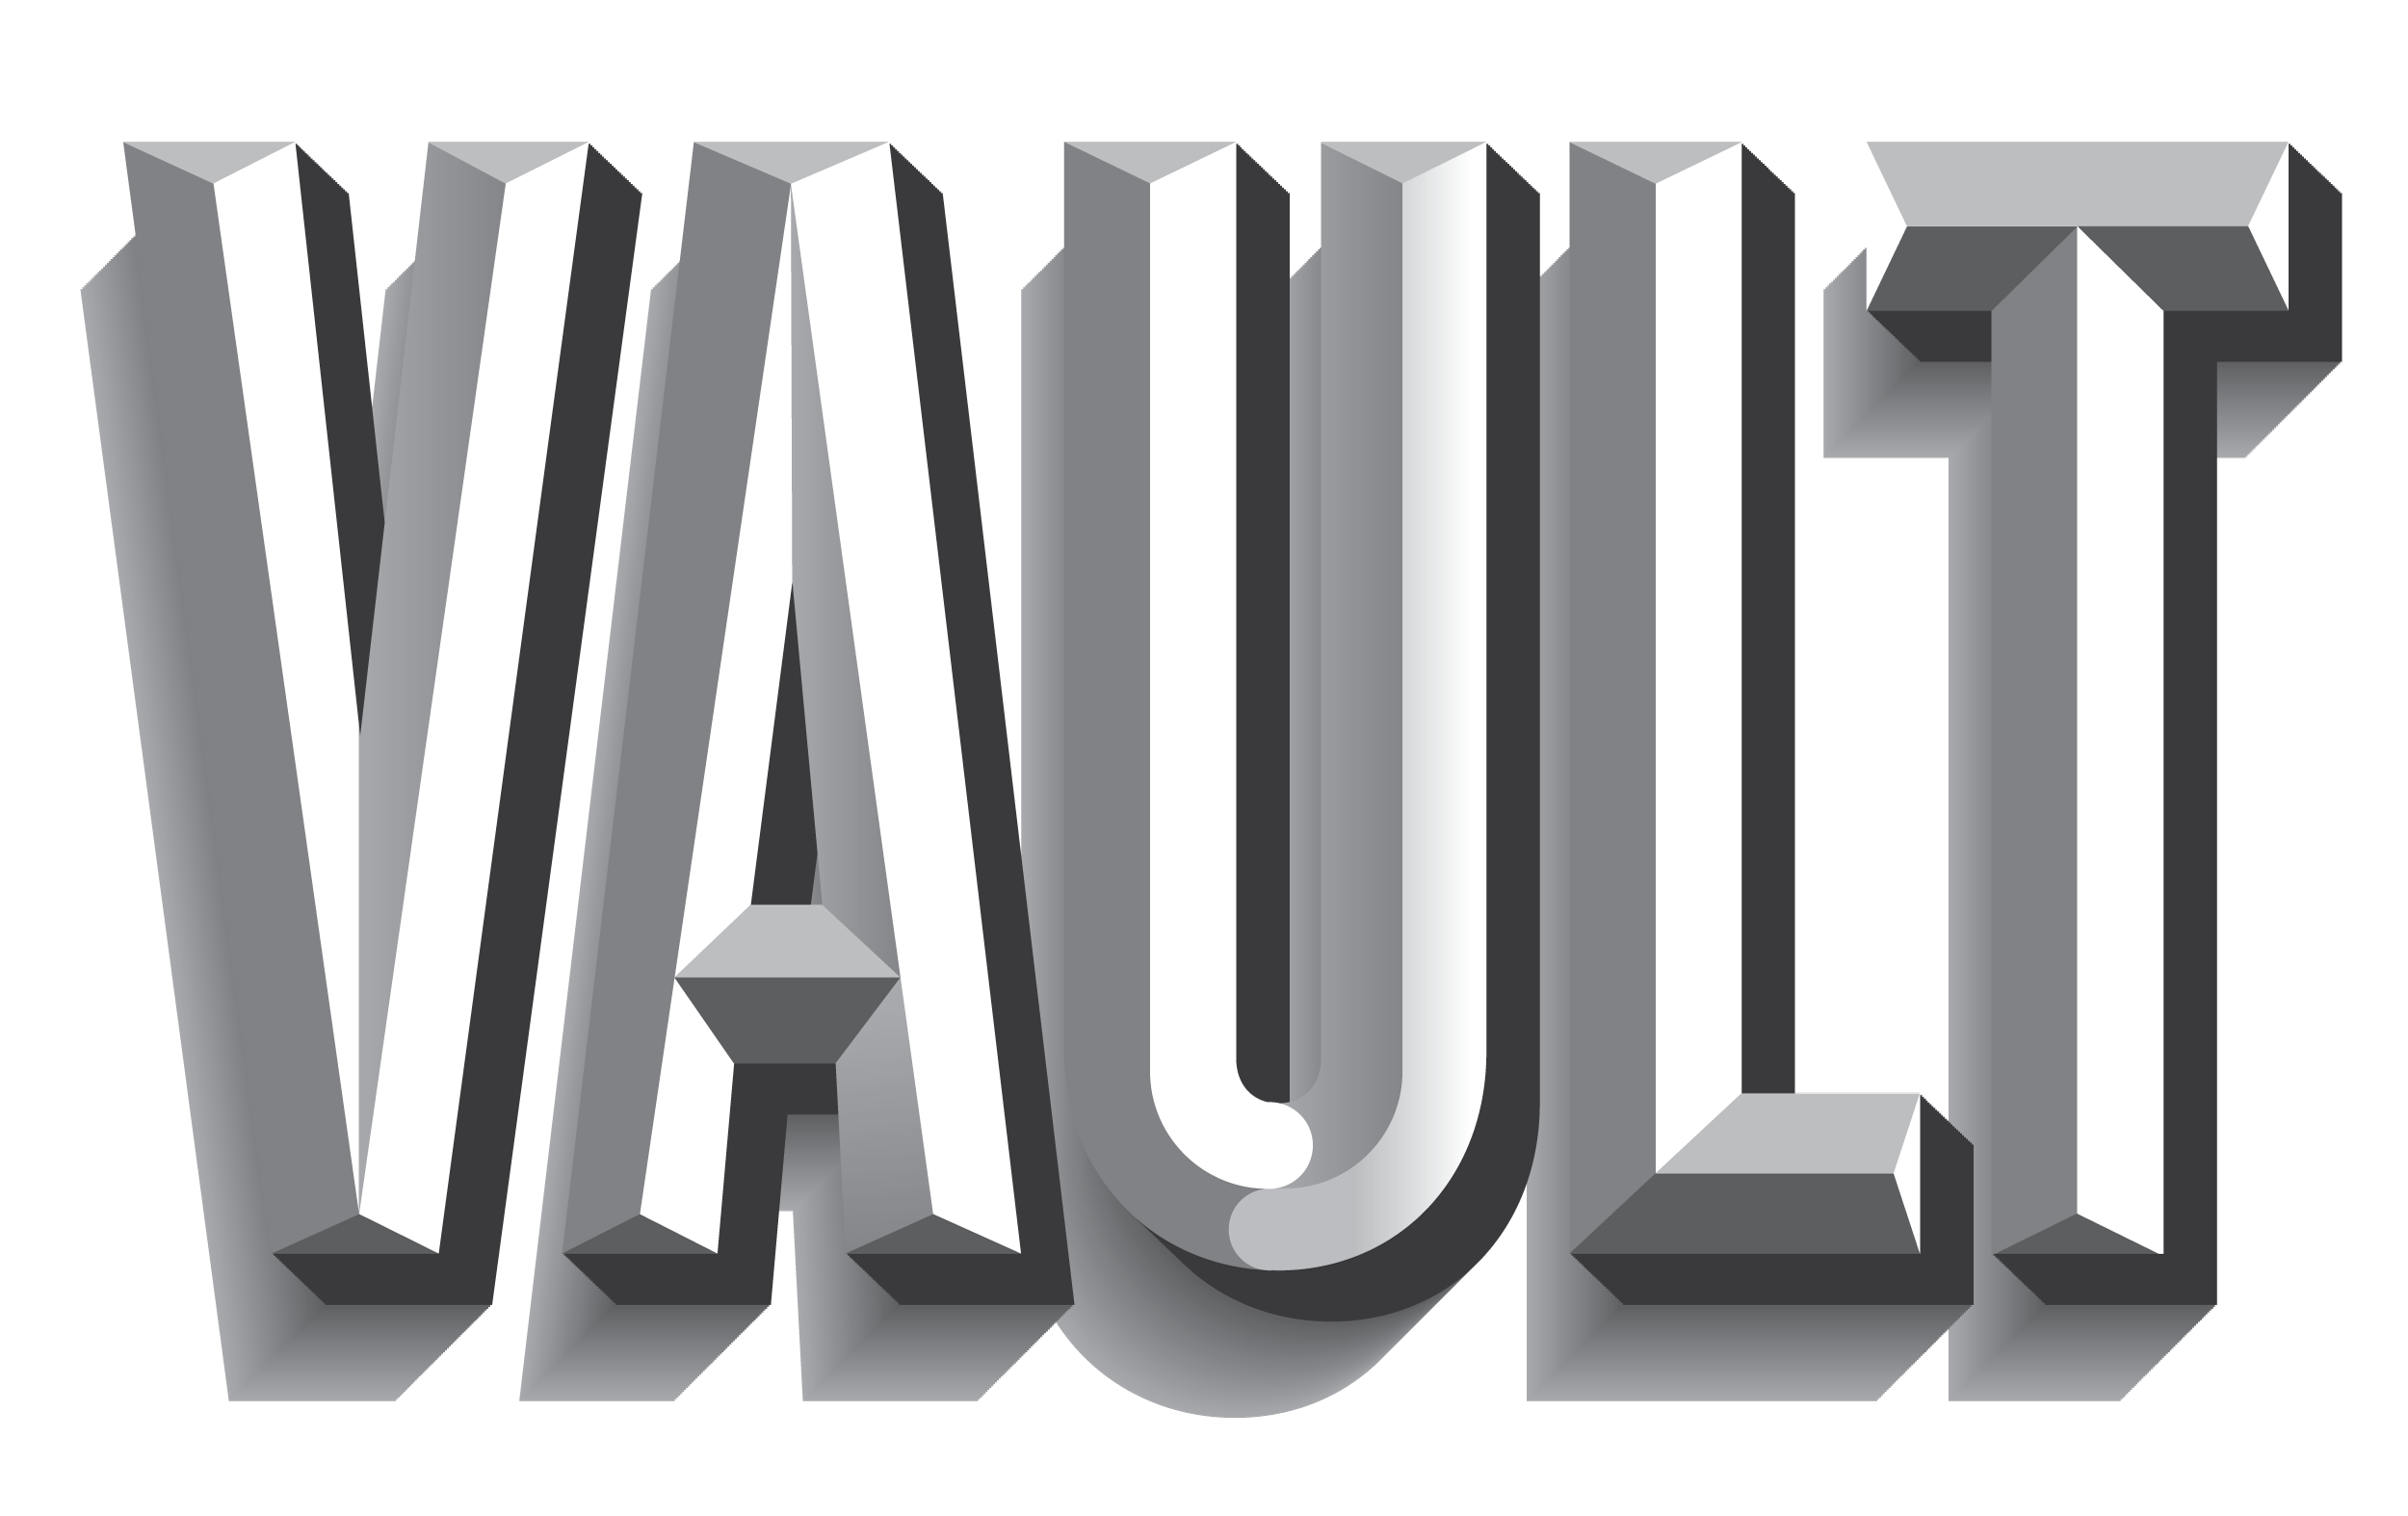 the-vault_02.png